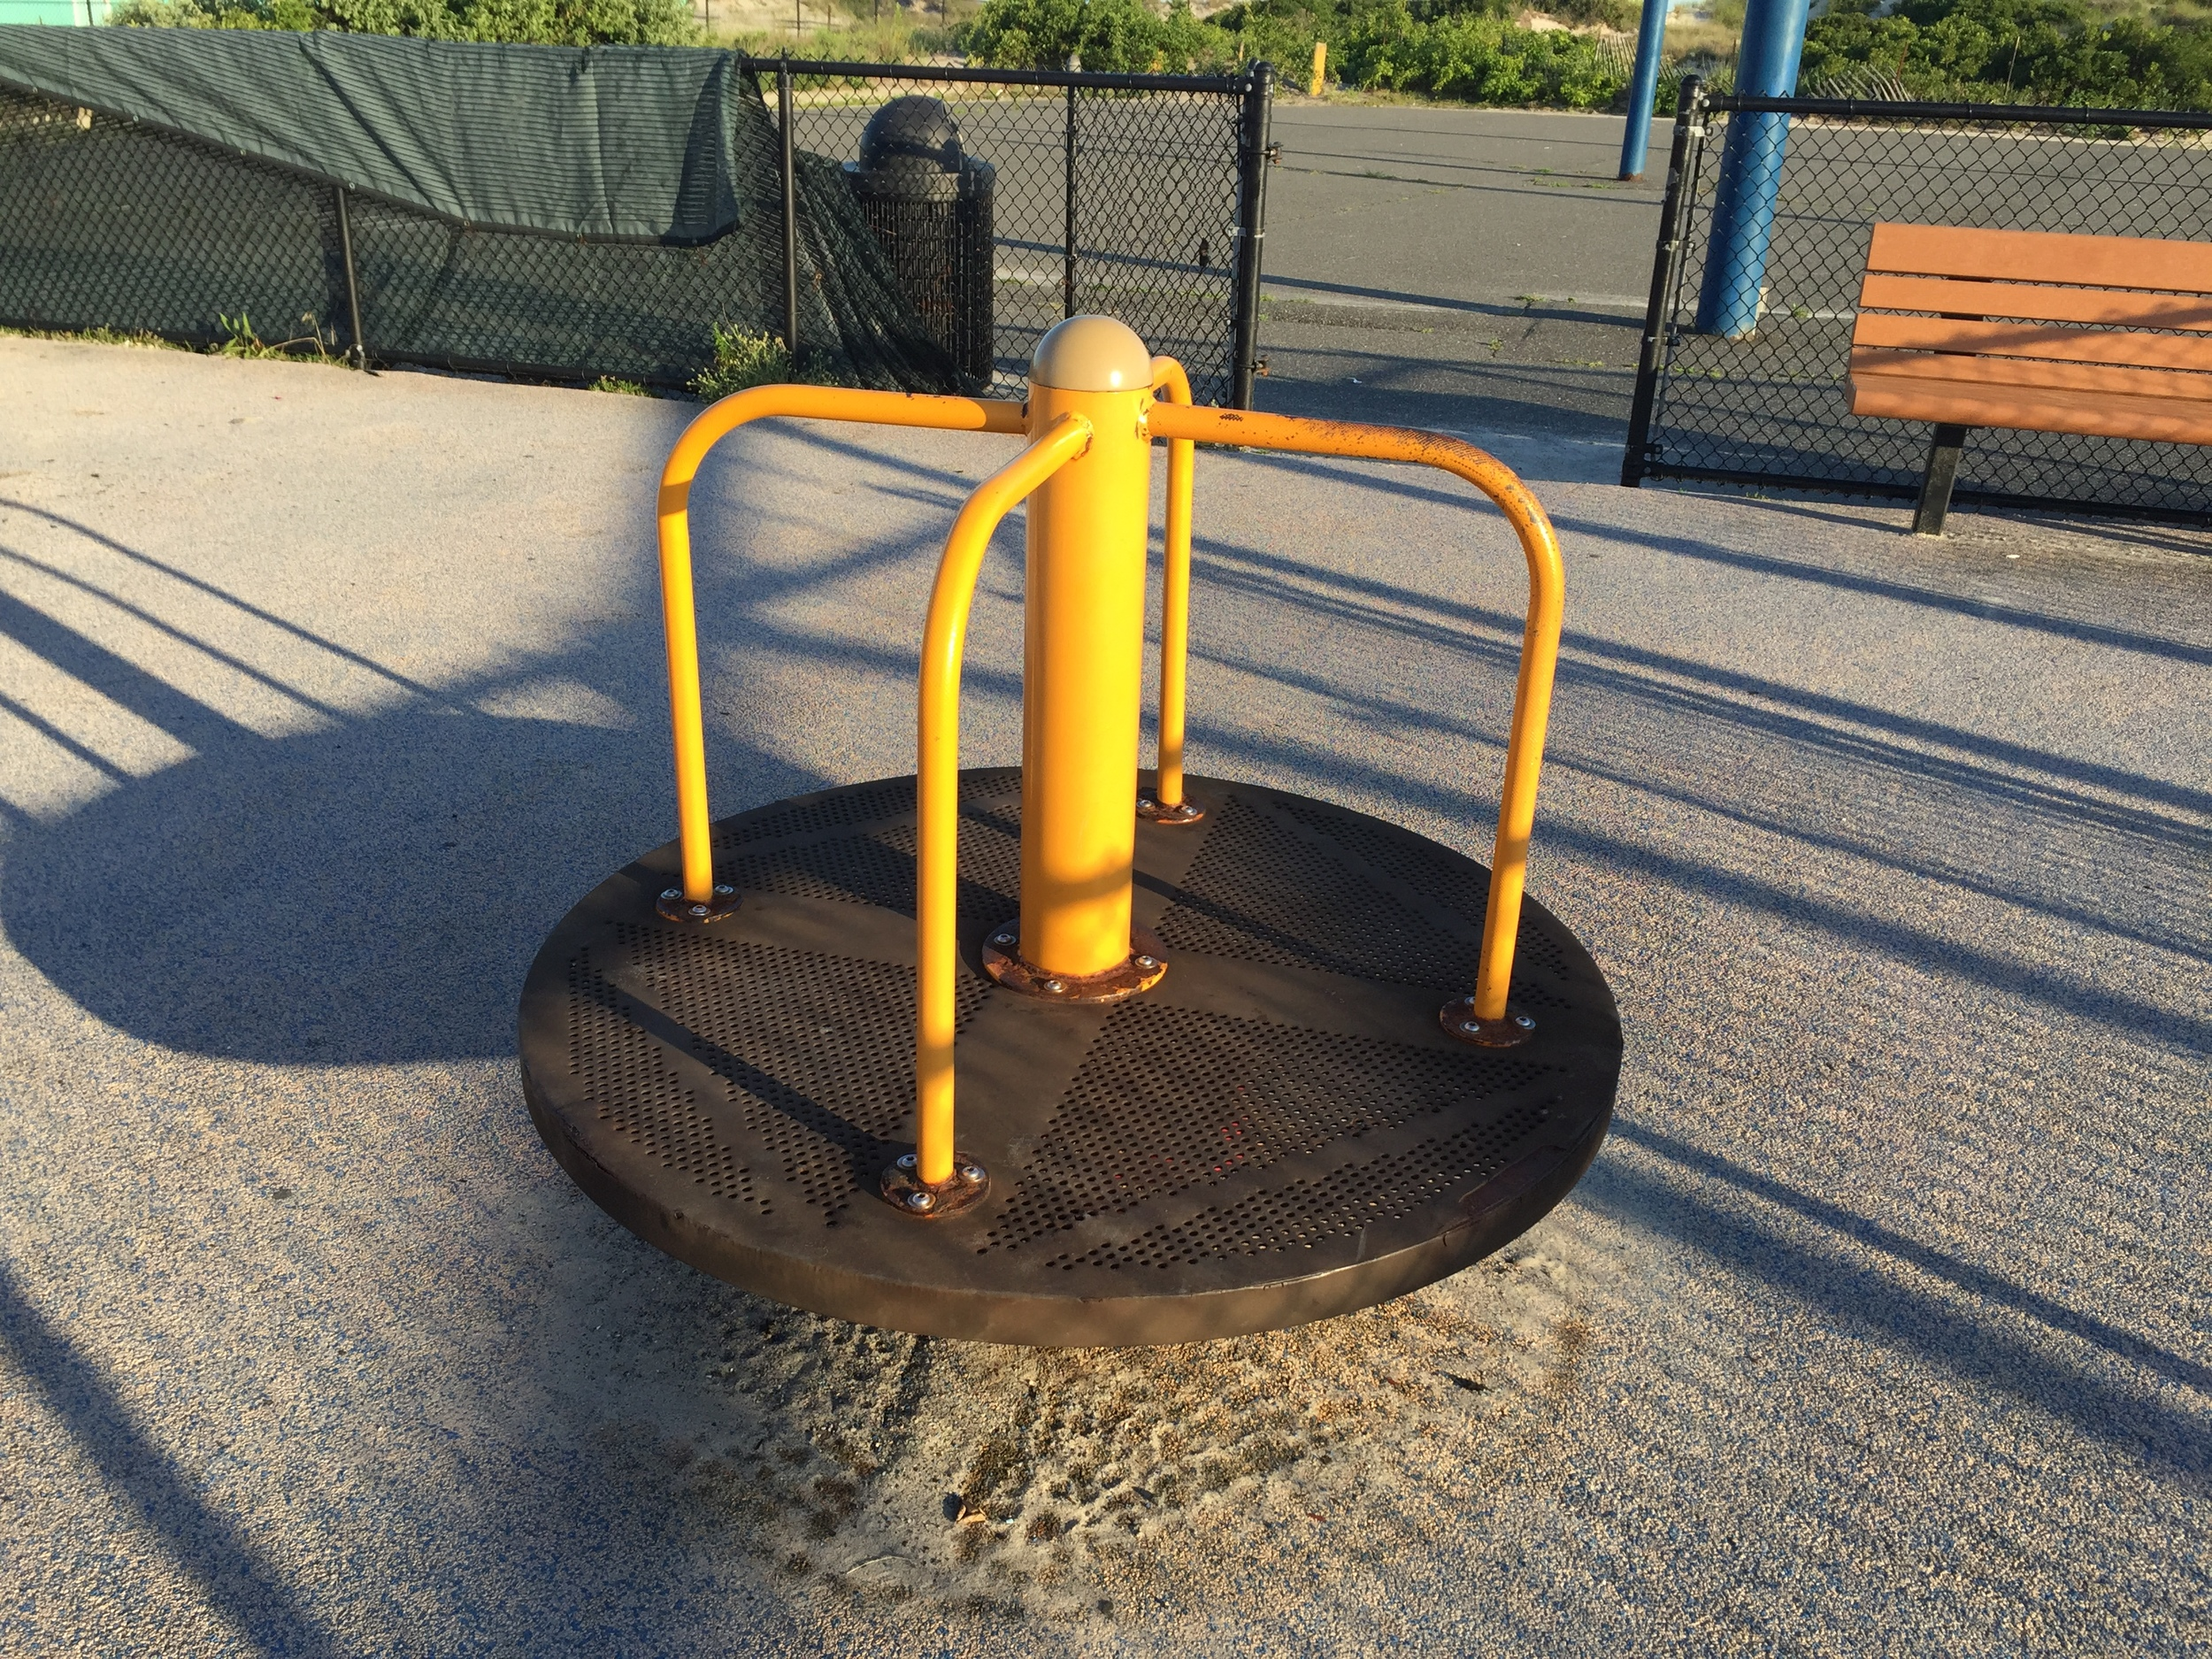 Playground at Nickerson Beach